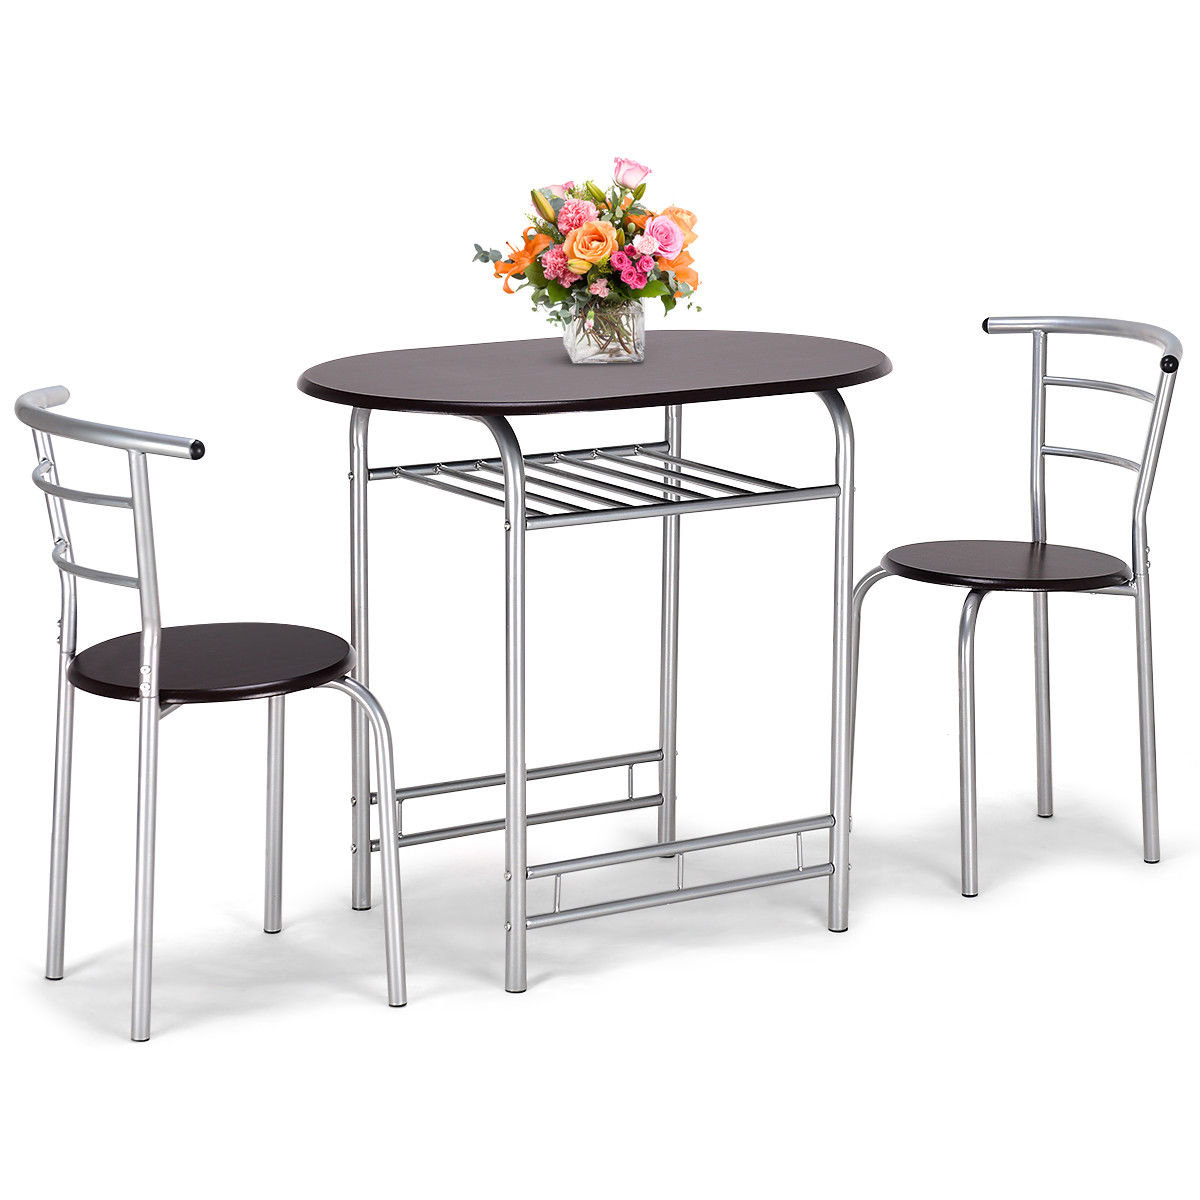 Most Up To Date Lelia 3 Piece Breakfast Nook Dining Set Pertaining To 3 Piece Breakfast Dining Sets (View 6 of 20)